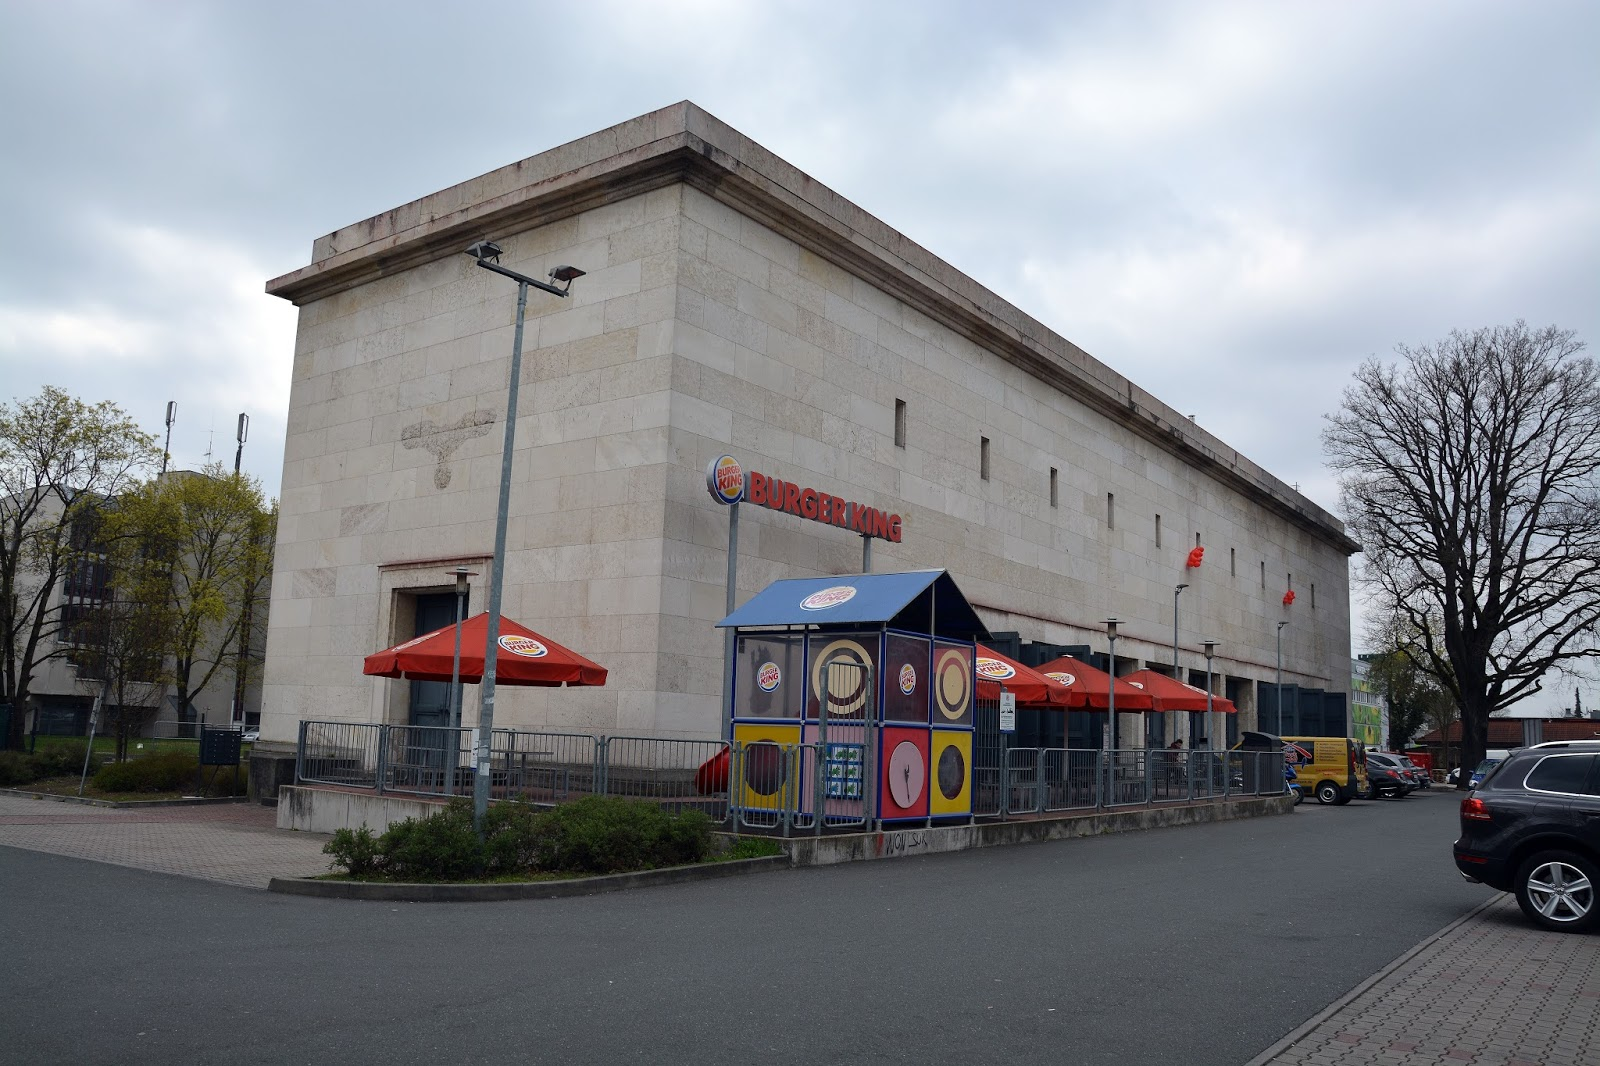 In Nuremberg, there's a Burger King in a former Nazi transformator building:  https://3.bp.blogspot.com/-Le8-DNy_Mt4/WOgwkp9NTkI/AAAAAAAAfdc/XGG78vKUSgwOfsN1xXT0wpHwgi43Eju0ACLcB/s1600/DSC_0718.JPG  Take that, evil McDonald's!